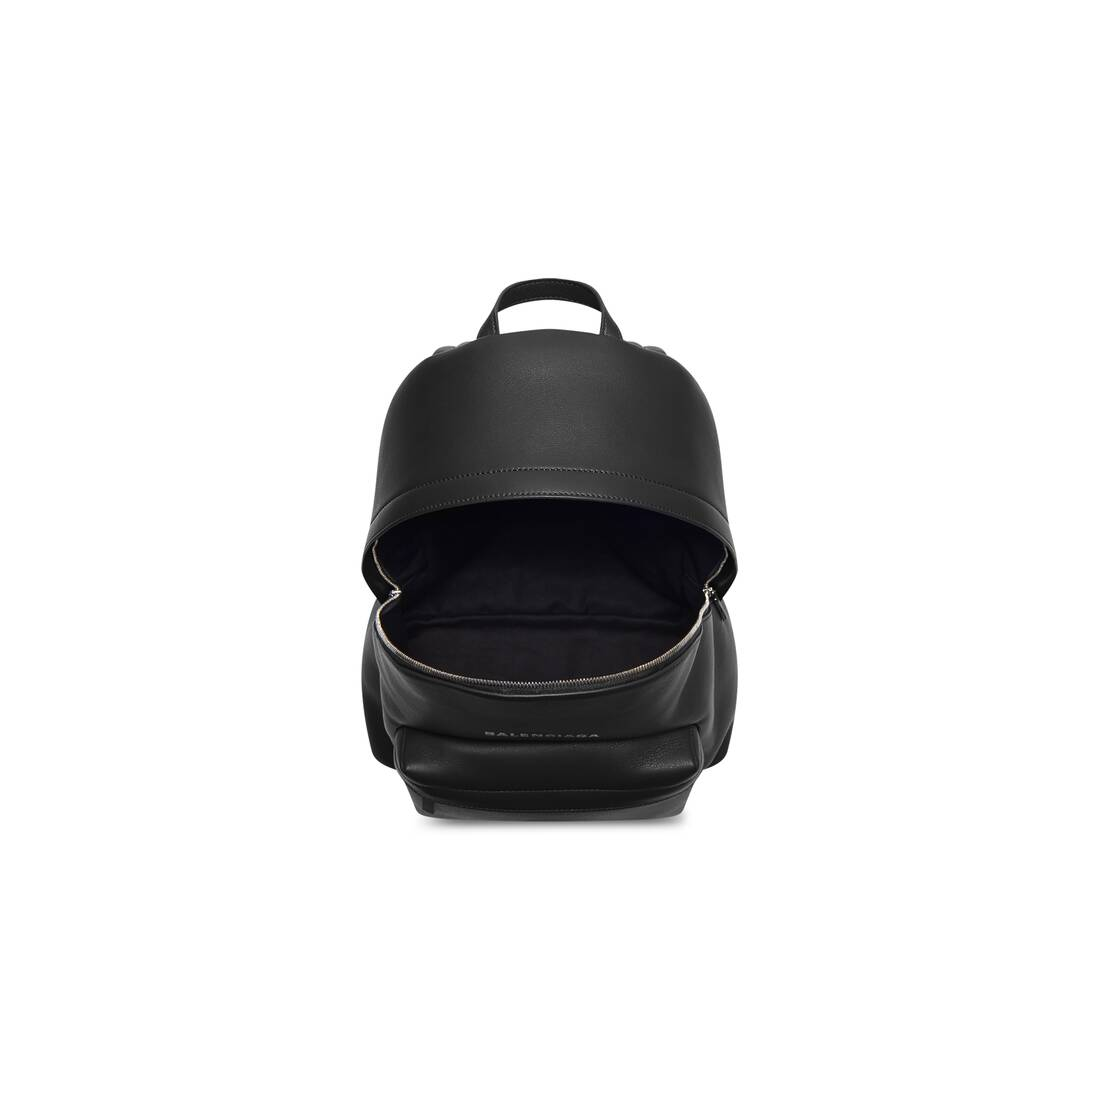 Display zoomed version of everyday backpack 4